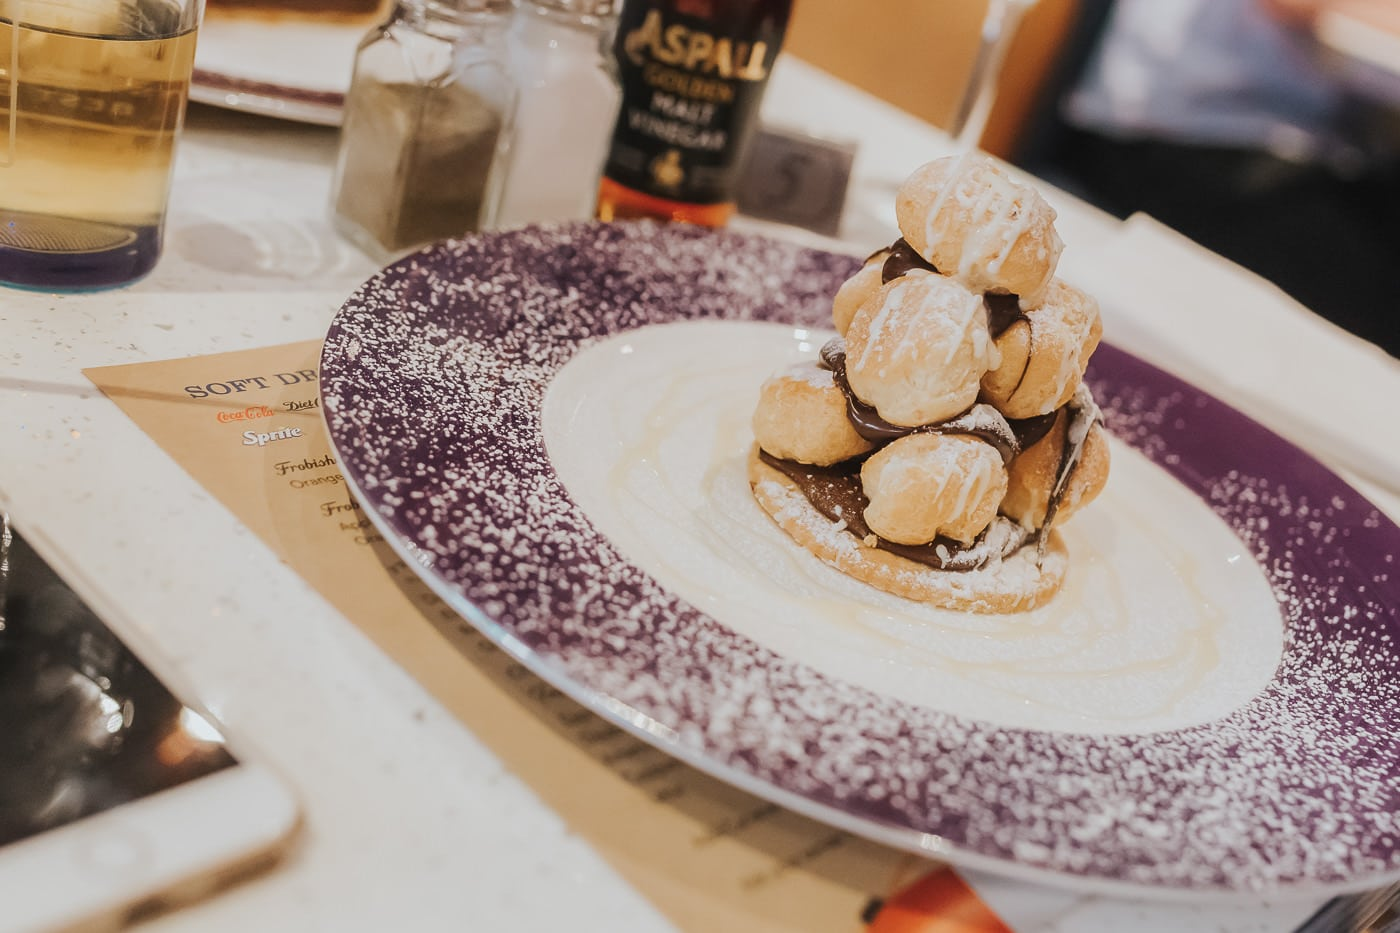 A stack of profiteroles on a plate with chocolate sauce and icing sugar